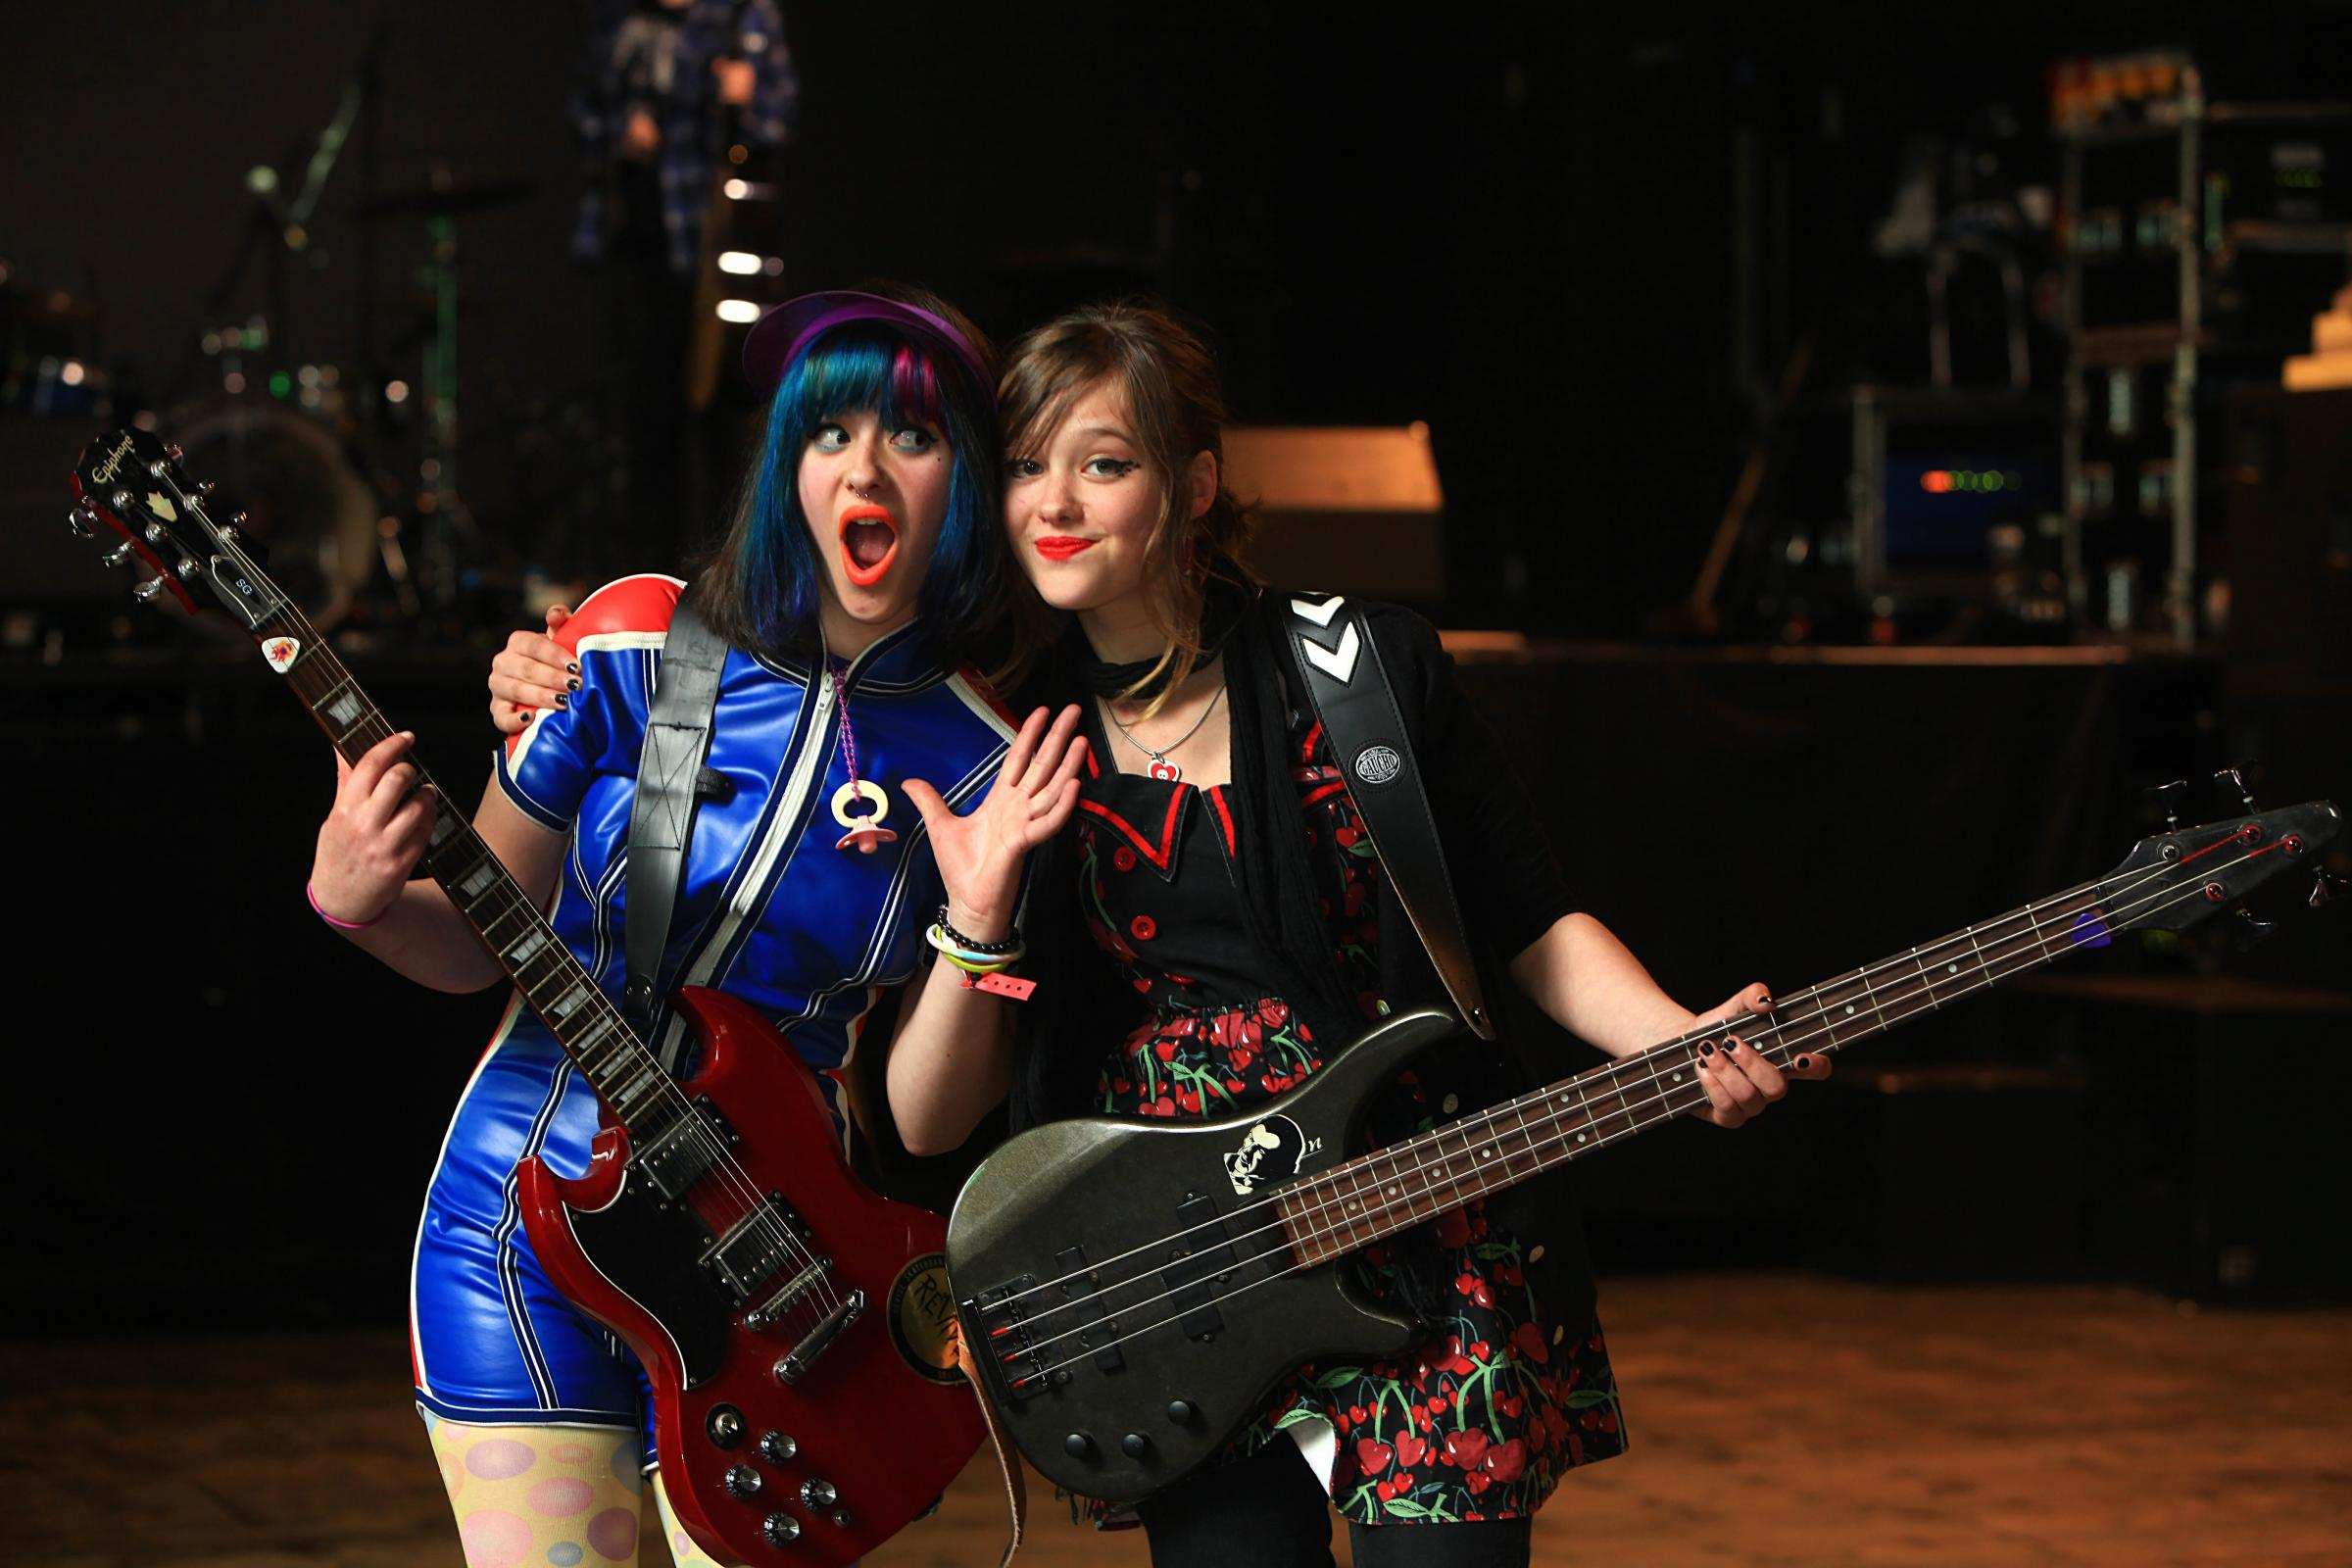 Riot grrl band Bratakus, featuring sisters Breagha Cuinn and Onnagh Cuinn, played at the Girls Rock Glasgow launch earlier this month Photograph: Steve Cox